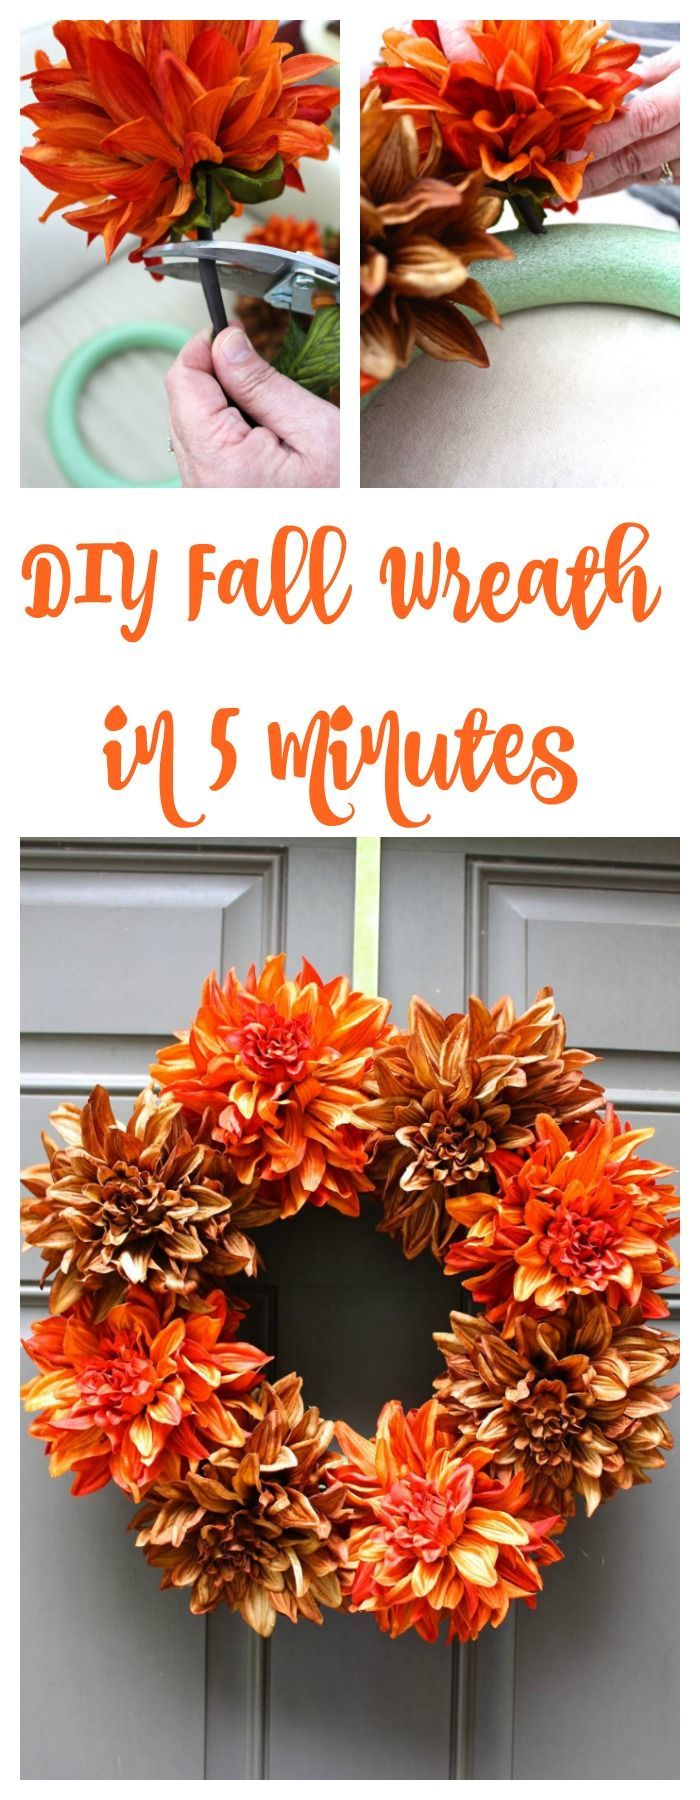 Diy thanksgiving paper decor - This Is A Great Fall Project To Make This Diy Fall Wreath Is Such A